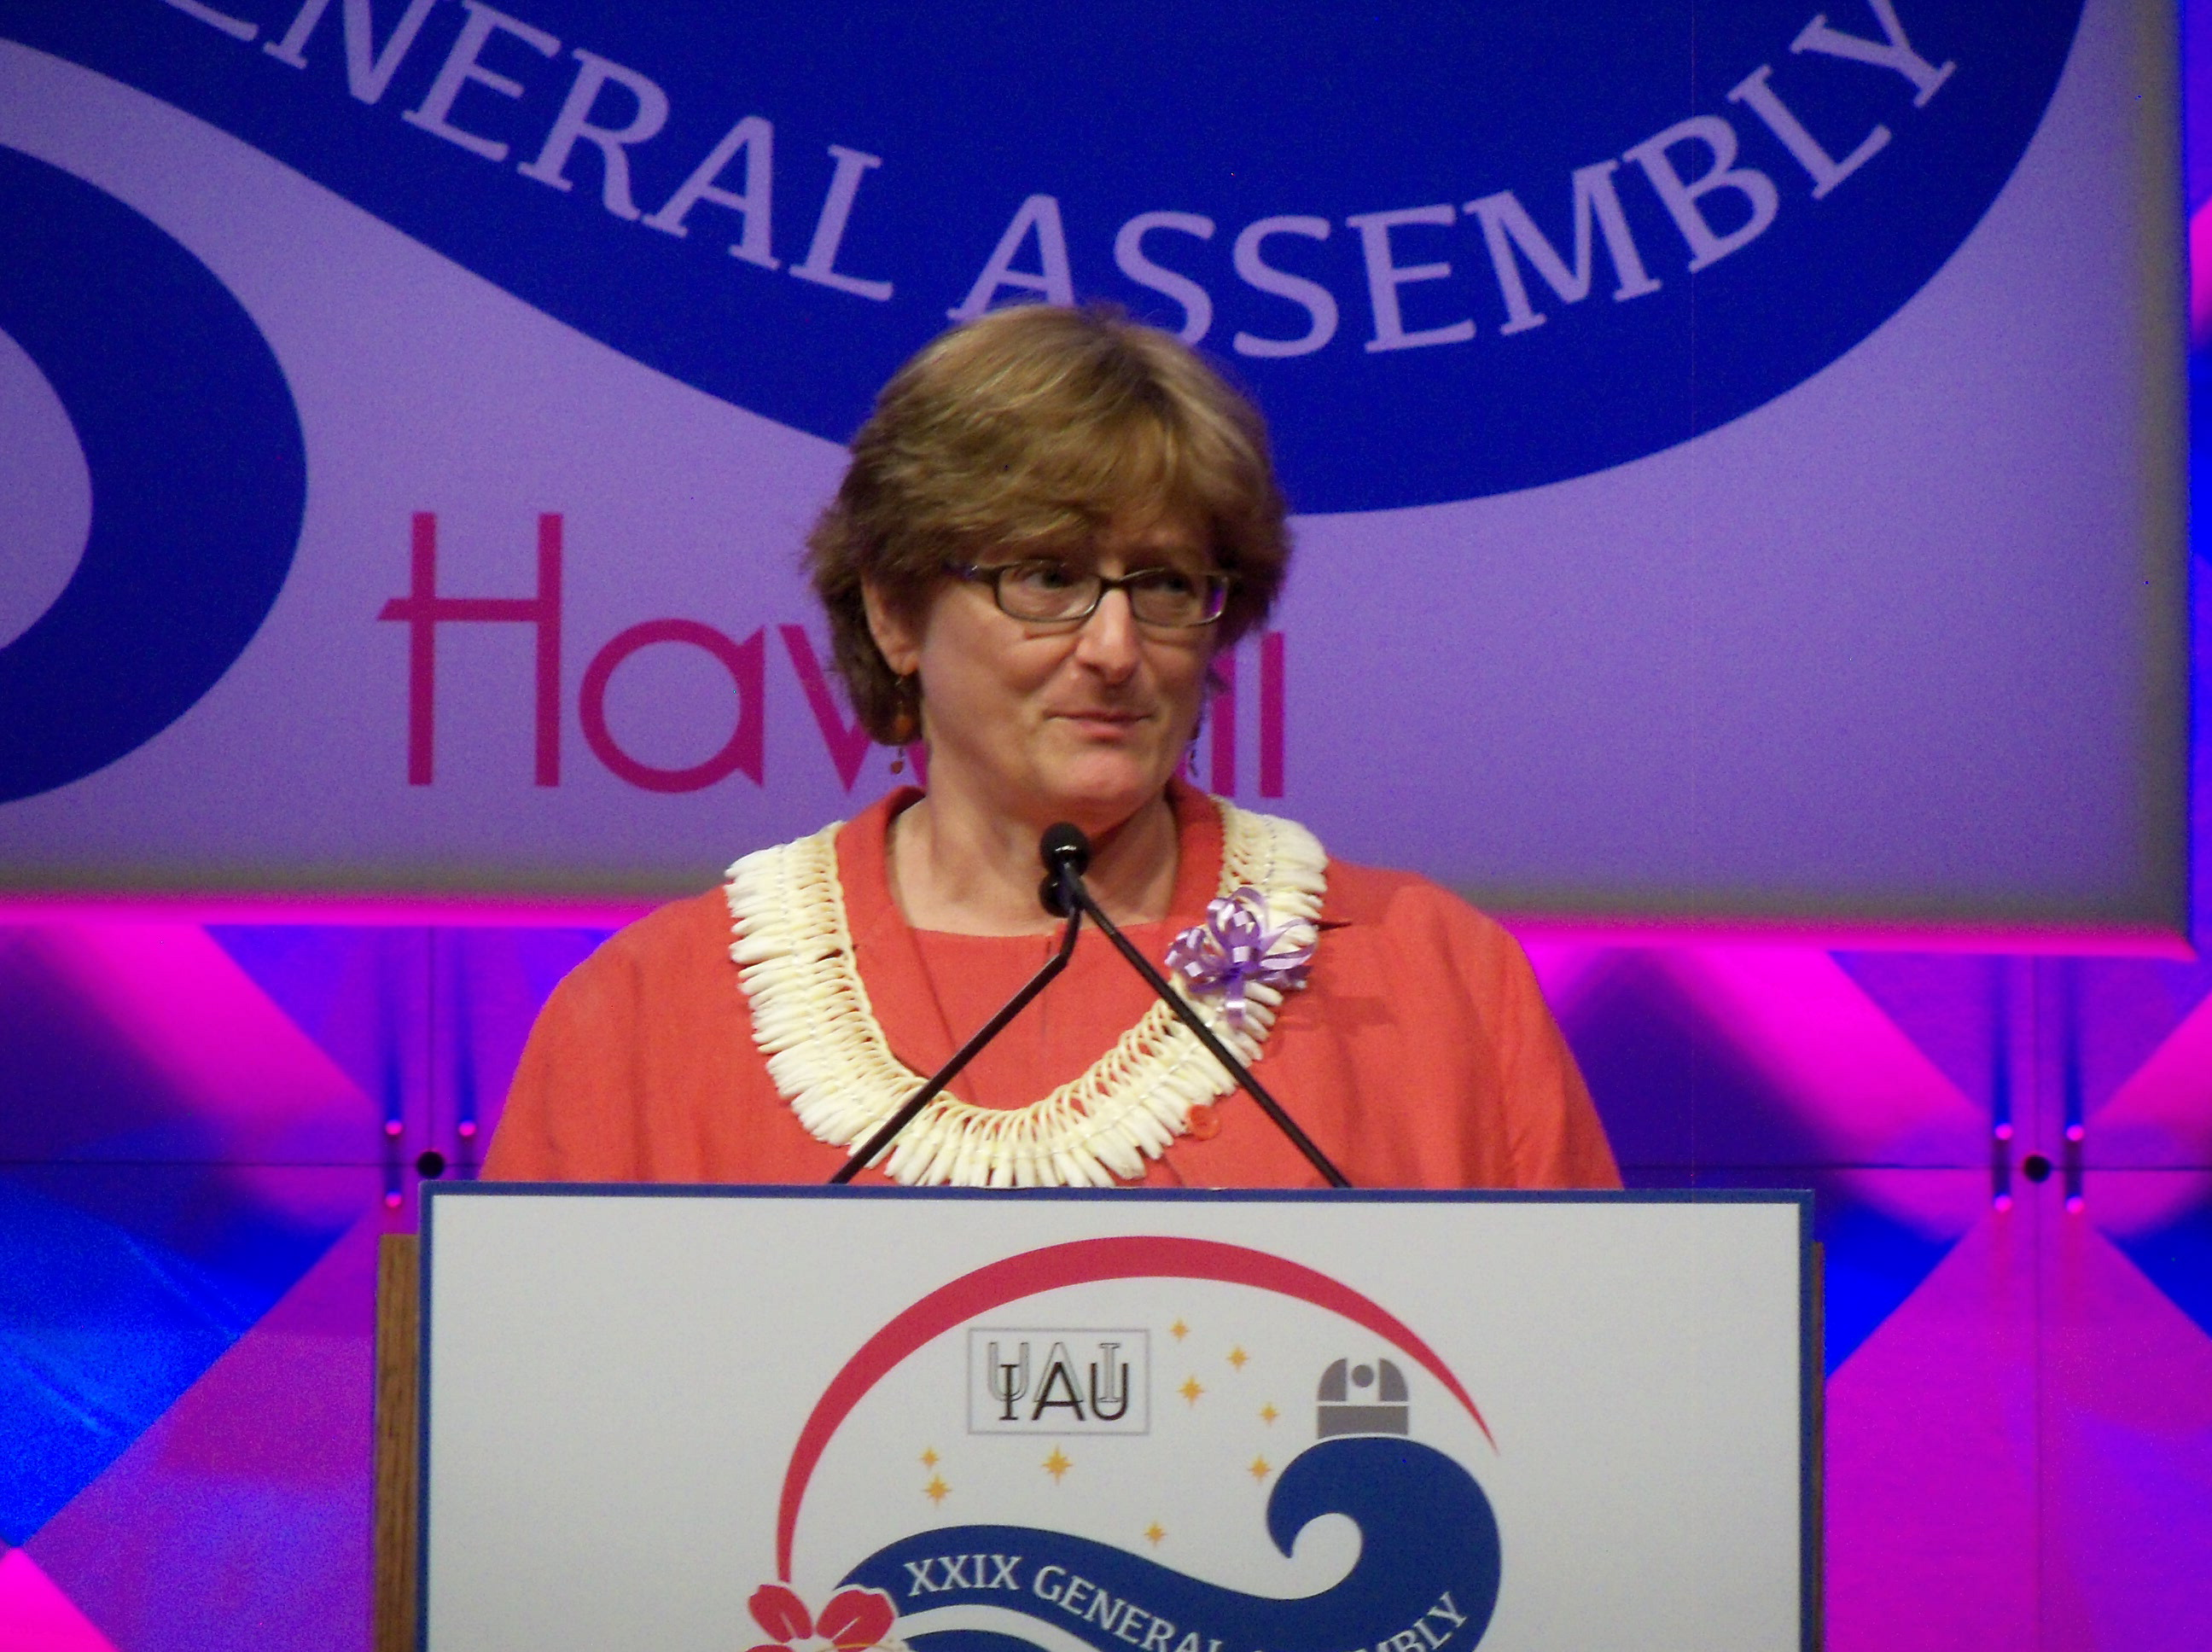 Meg Urry, AAS President, at the IAU Opening Ceremony